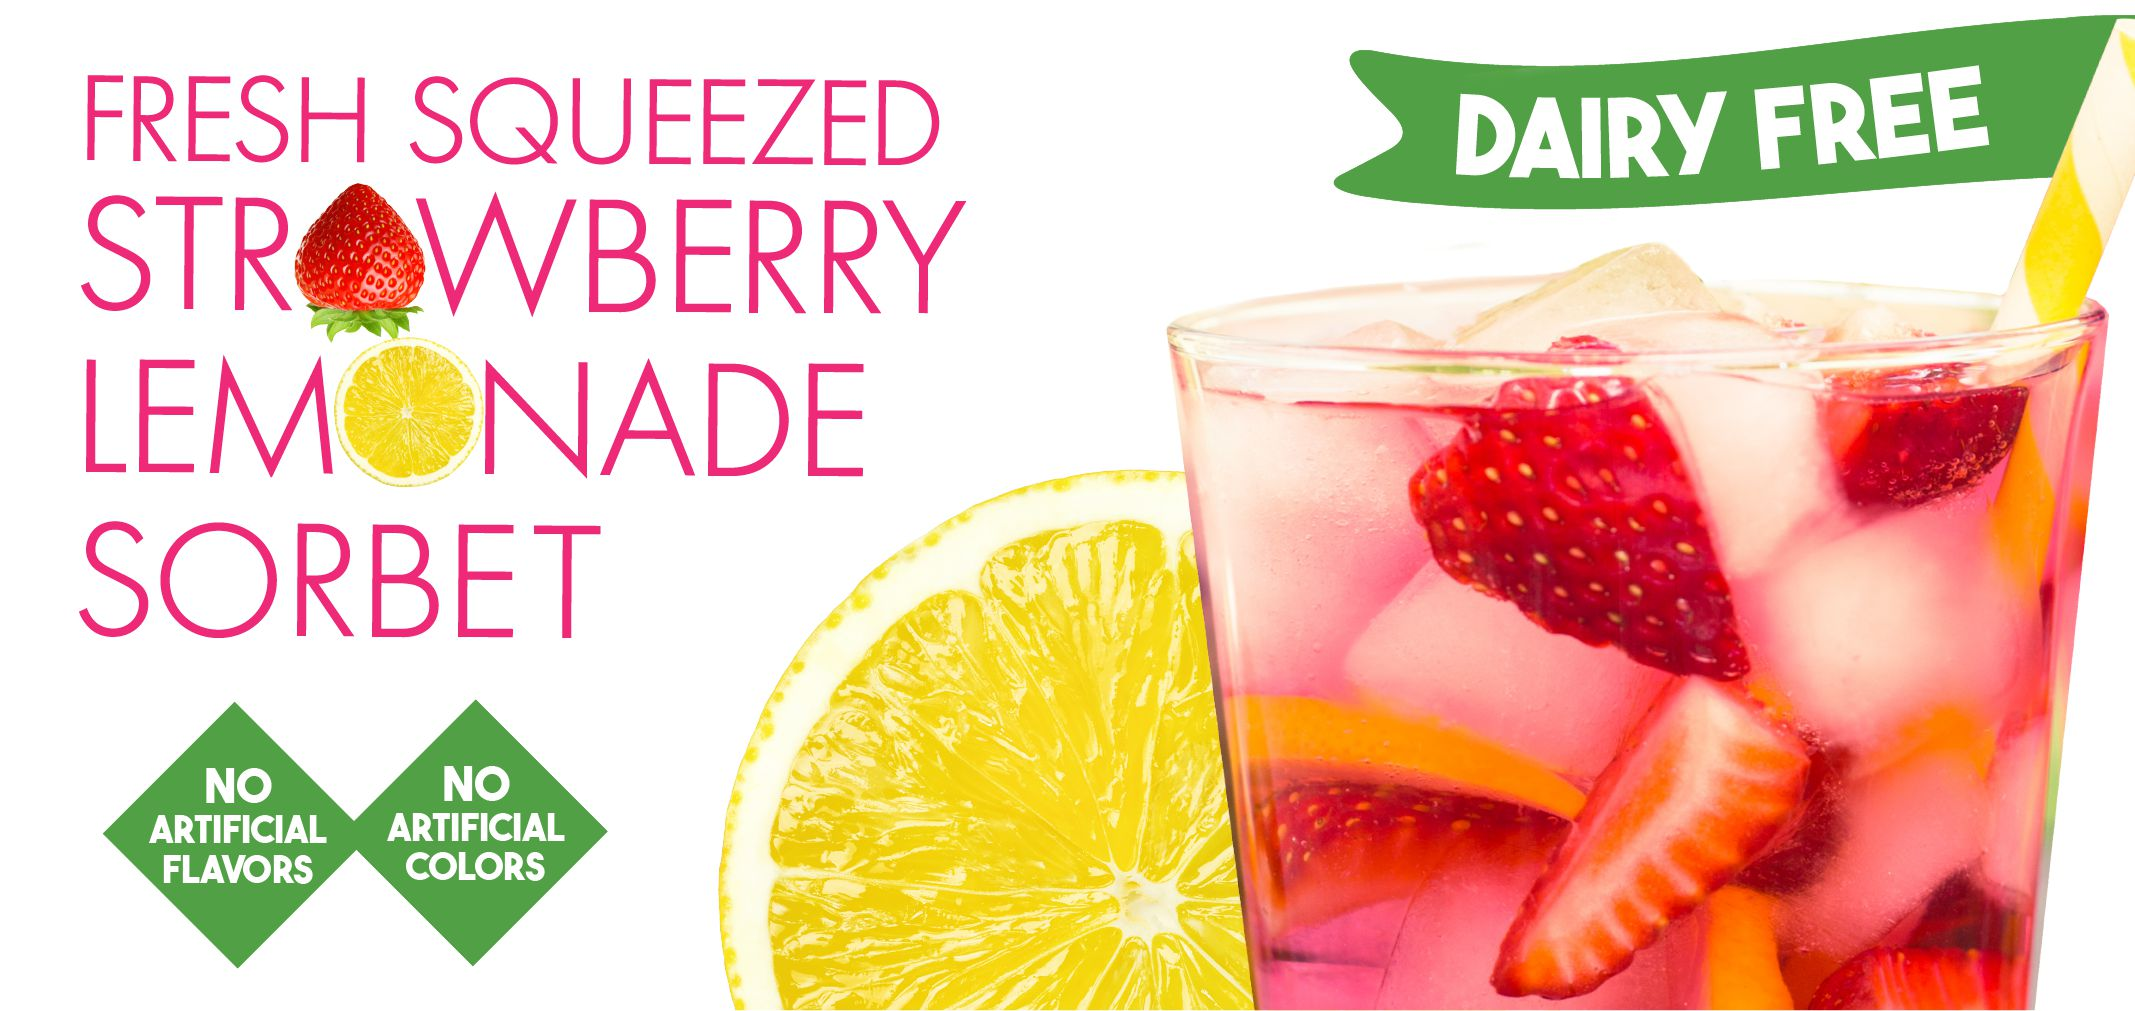 fresh squeezed strawberry lemonade sorbet label image